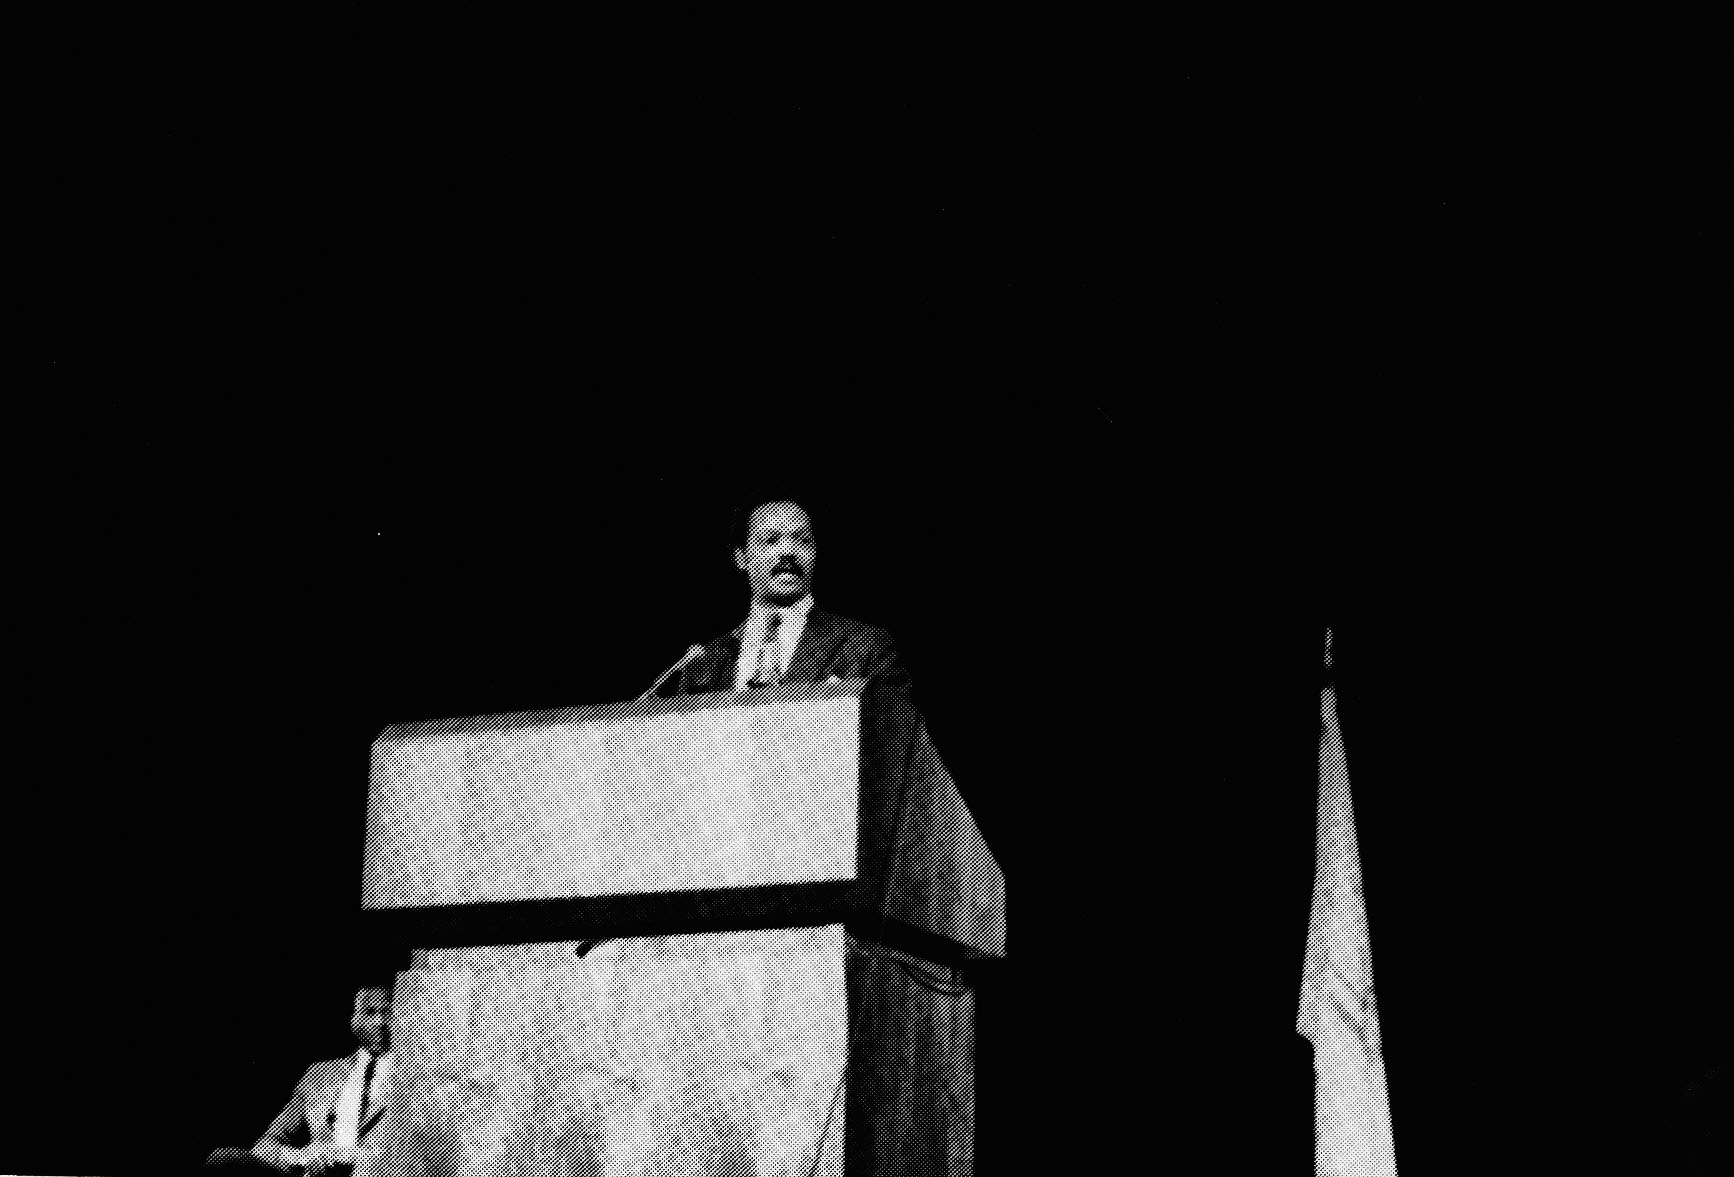 University of the District of Columbia -- Jesse Jackson speaks at UDC, 1984